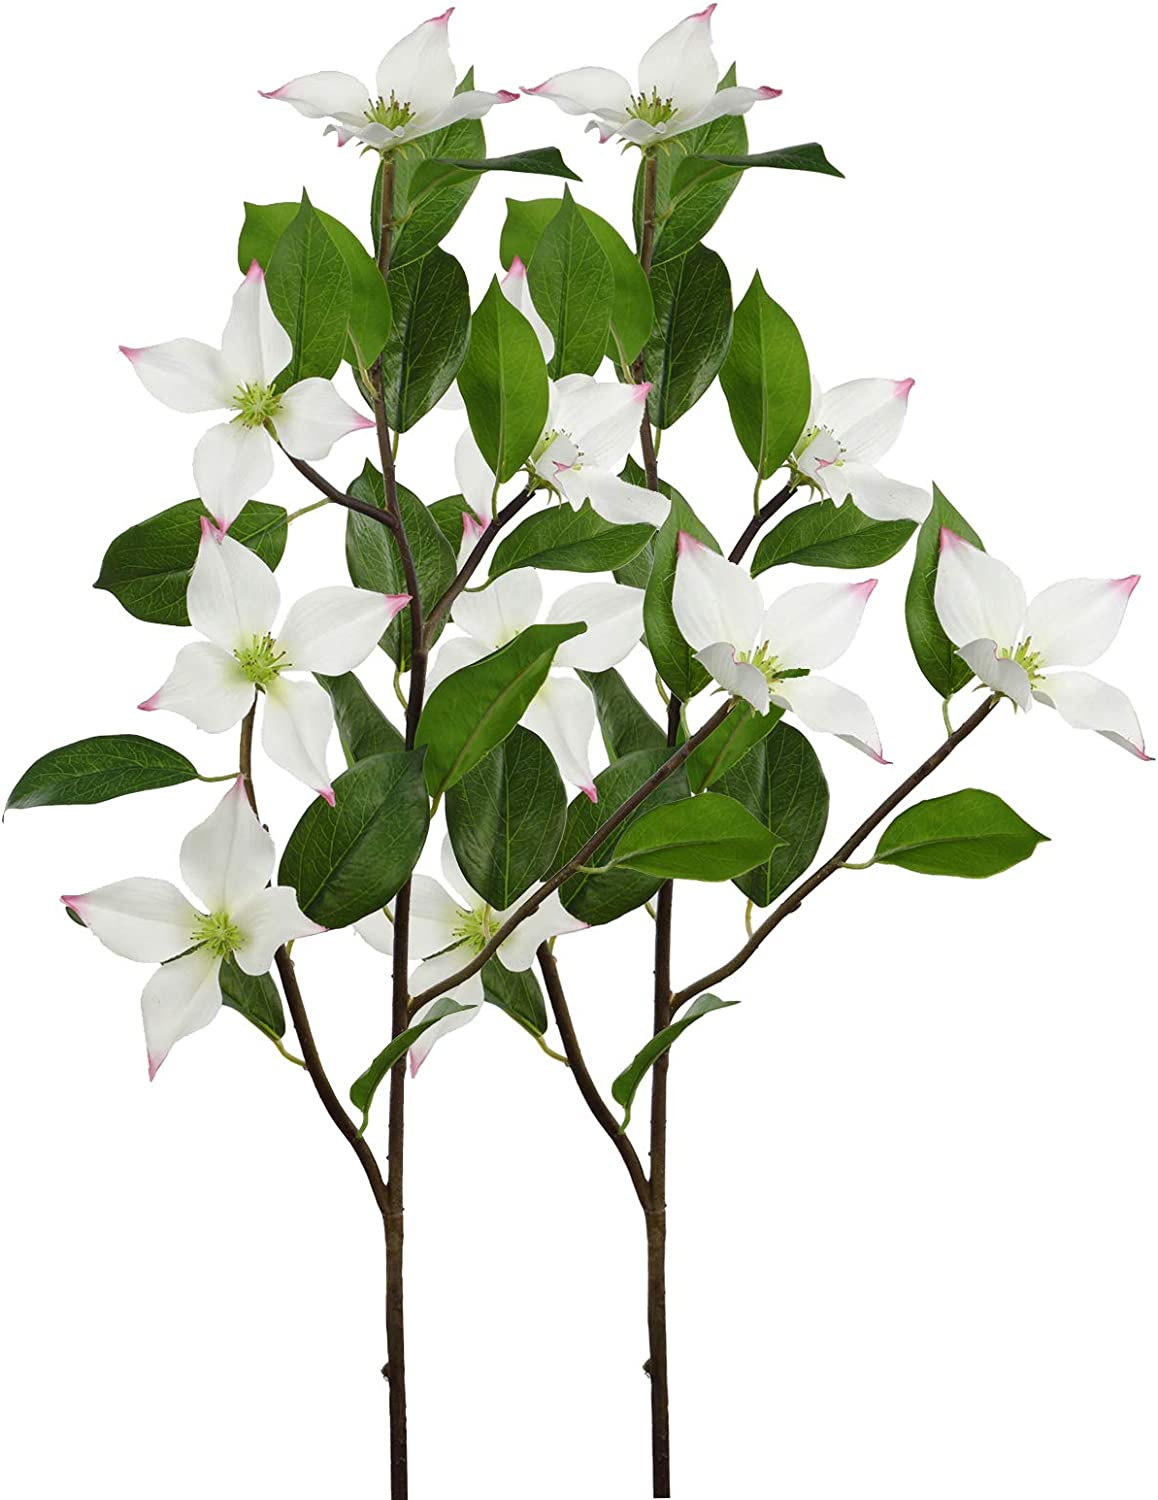 Rinlong Artificial Flowers White Silk Dogwood Flower Branches for Baby Shower Wedding Ceremony Decor Home Kitchen Table Centerpiece Bedroom Decoration